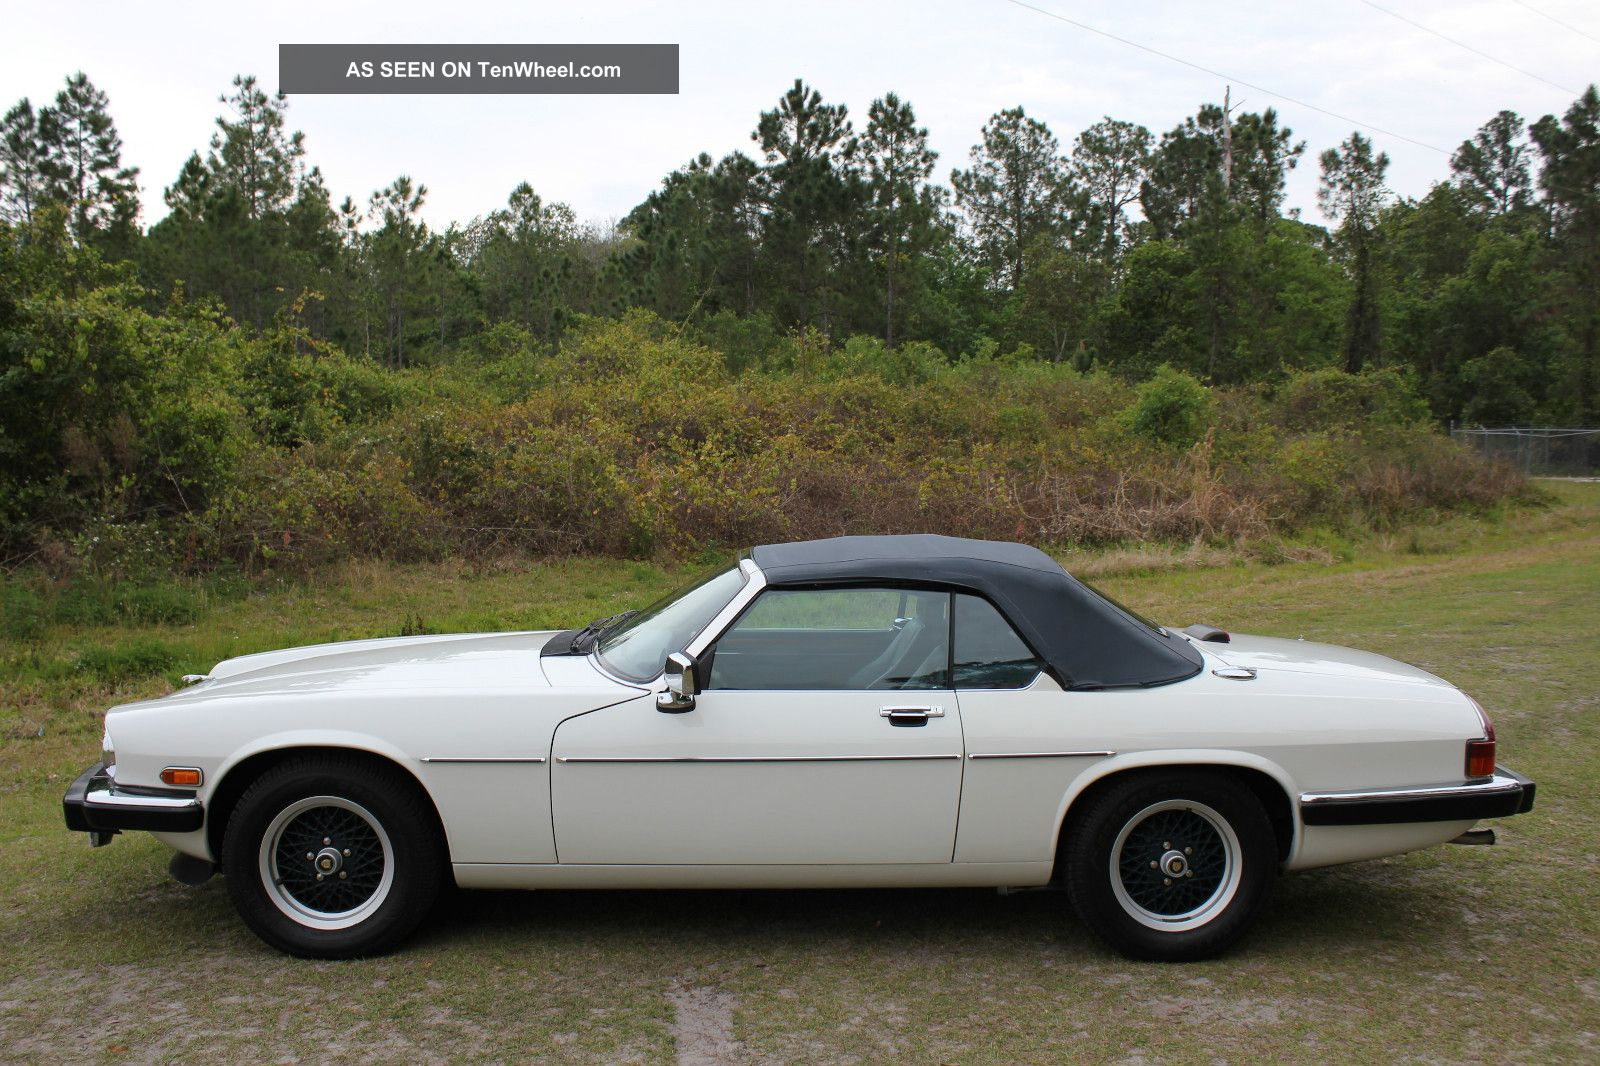 1990 Jaguar Xjs Convertible V12 2 Door 5 3l Make Me An Offer Engine Wiring